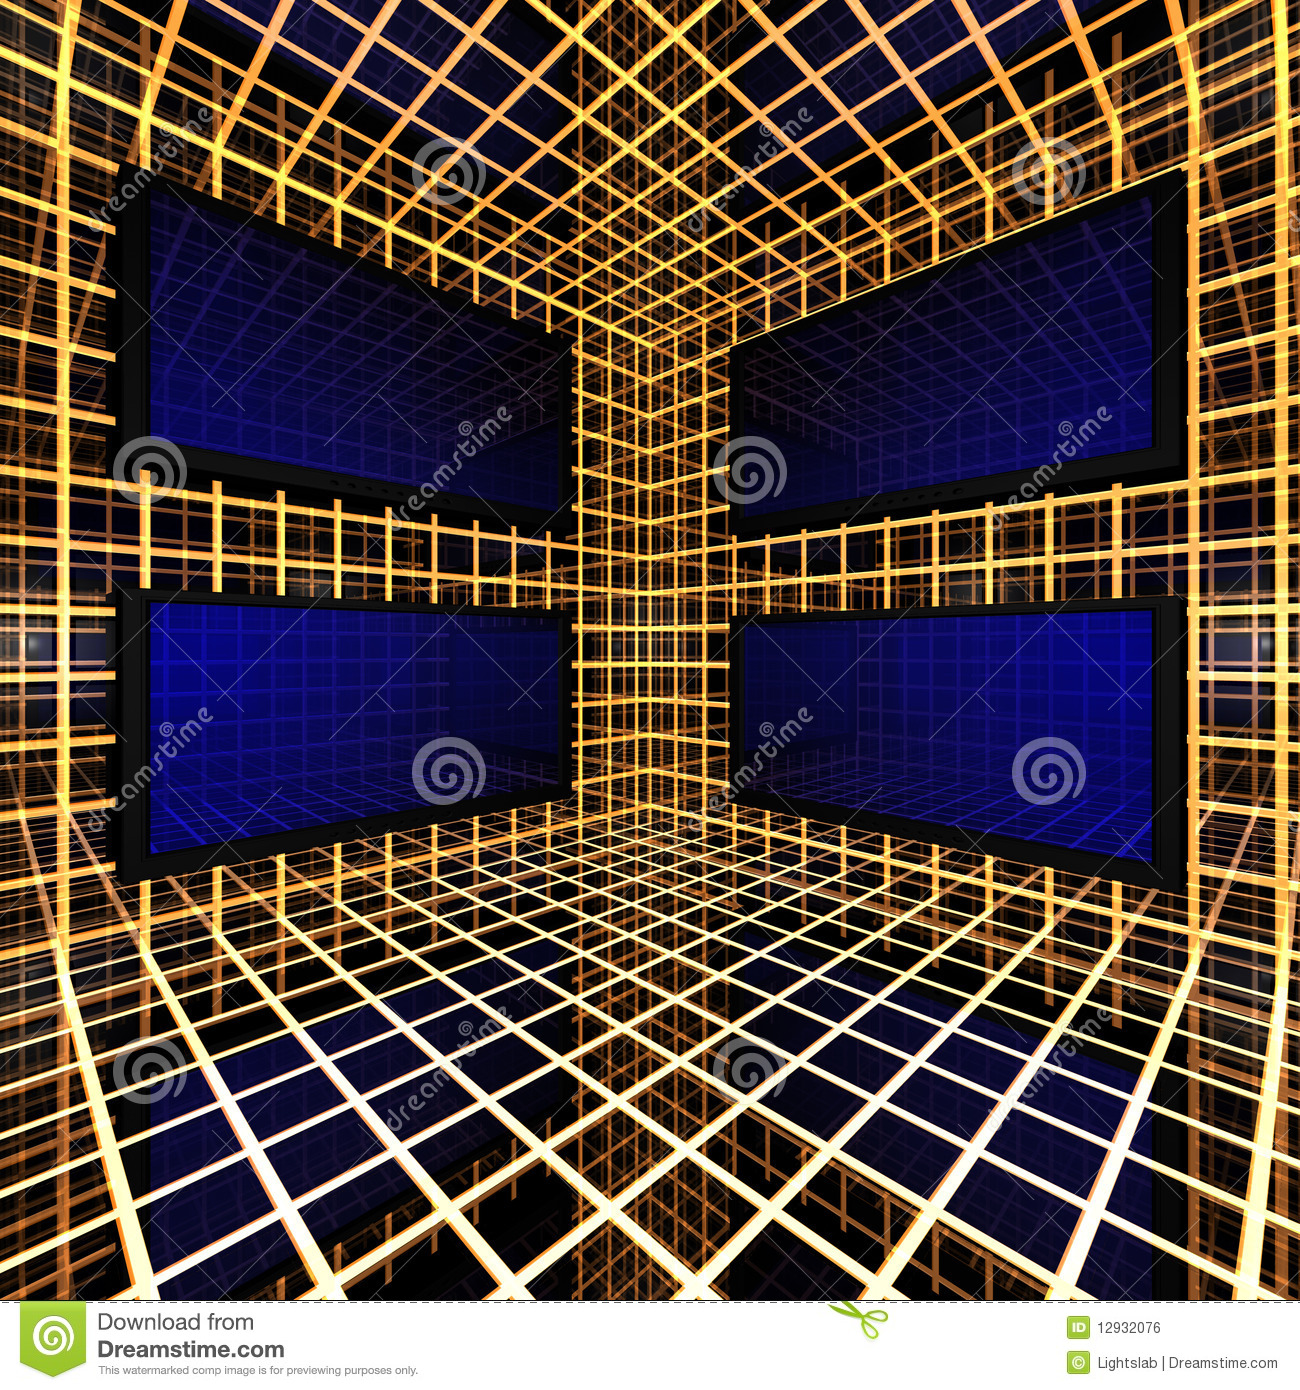 Monitors in grid room royalty free stock image image for Room grid